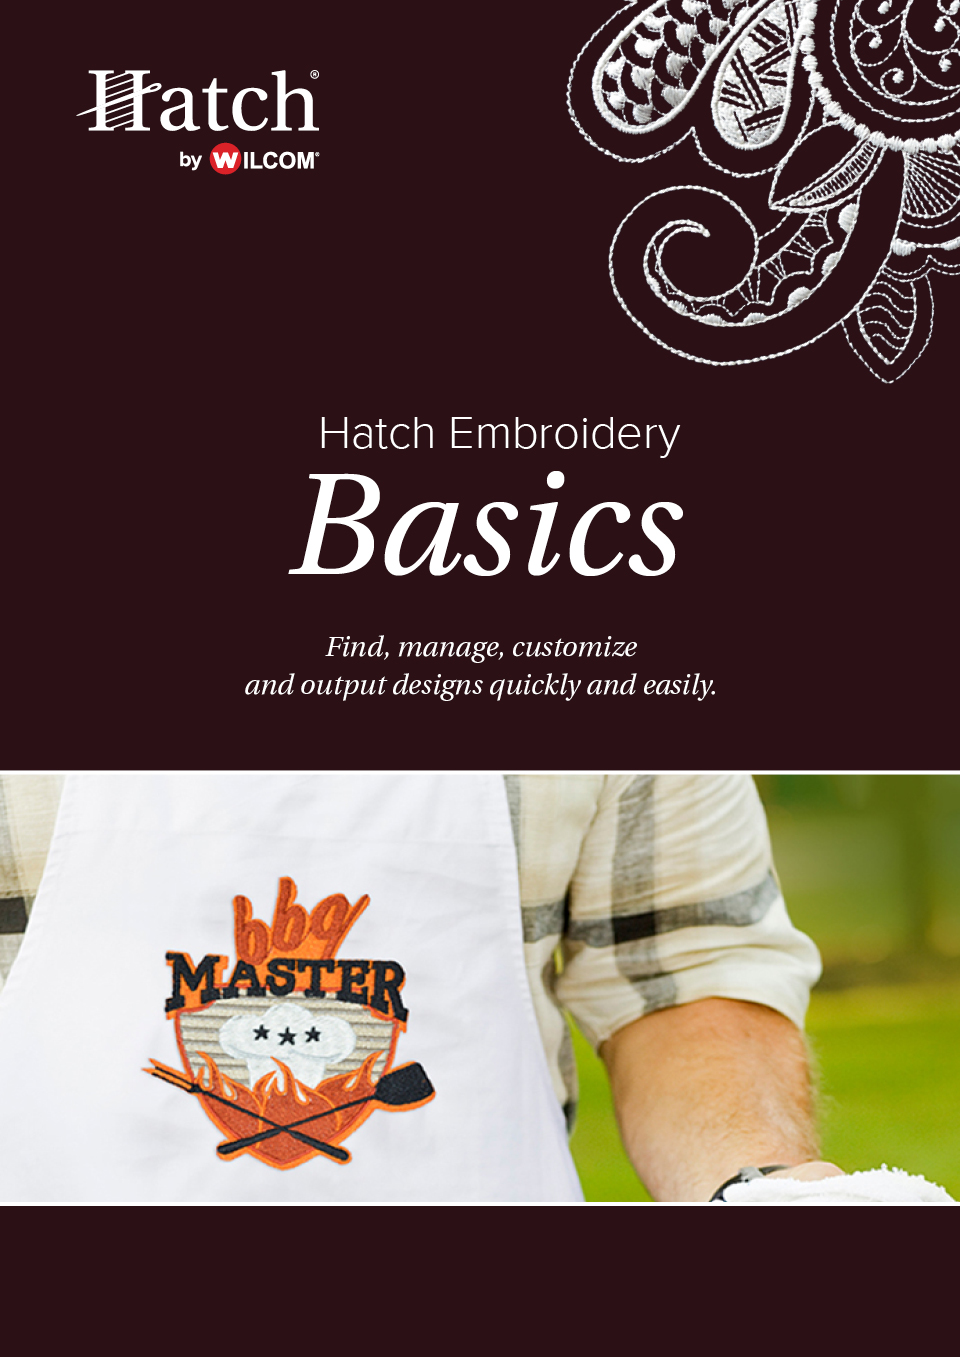 Hatch Embroidery Basics [Download] by Wilcom